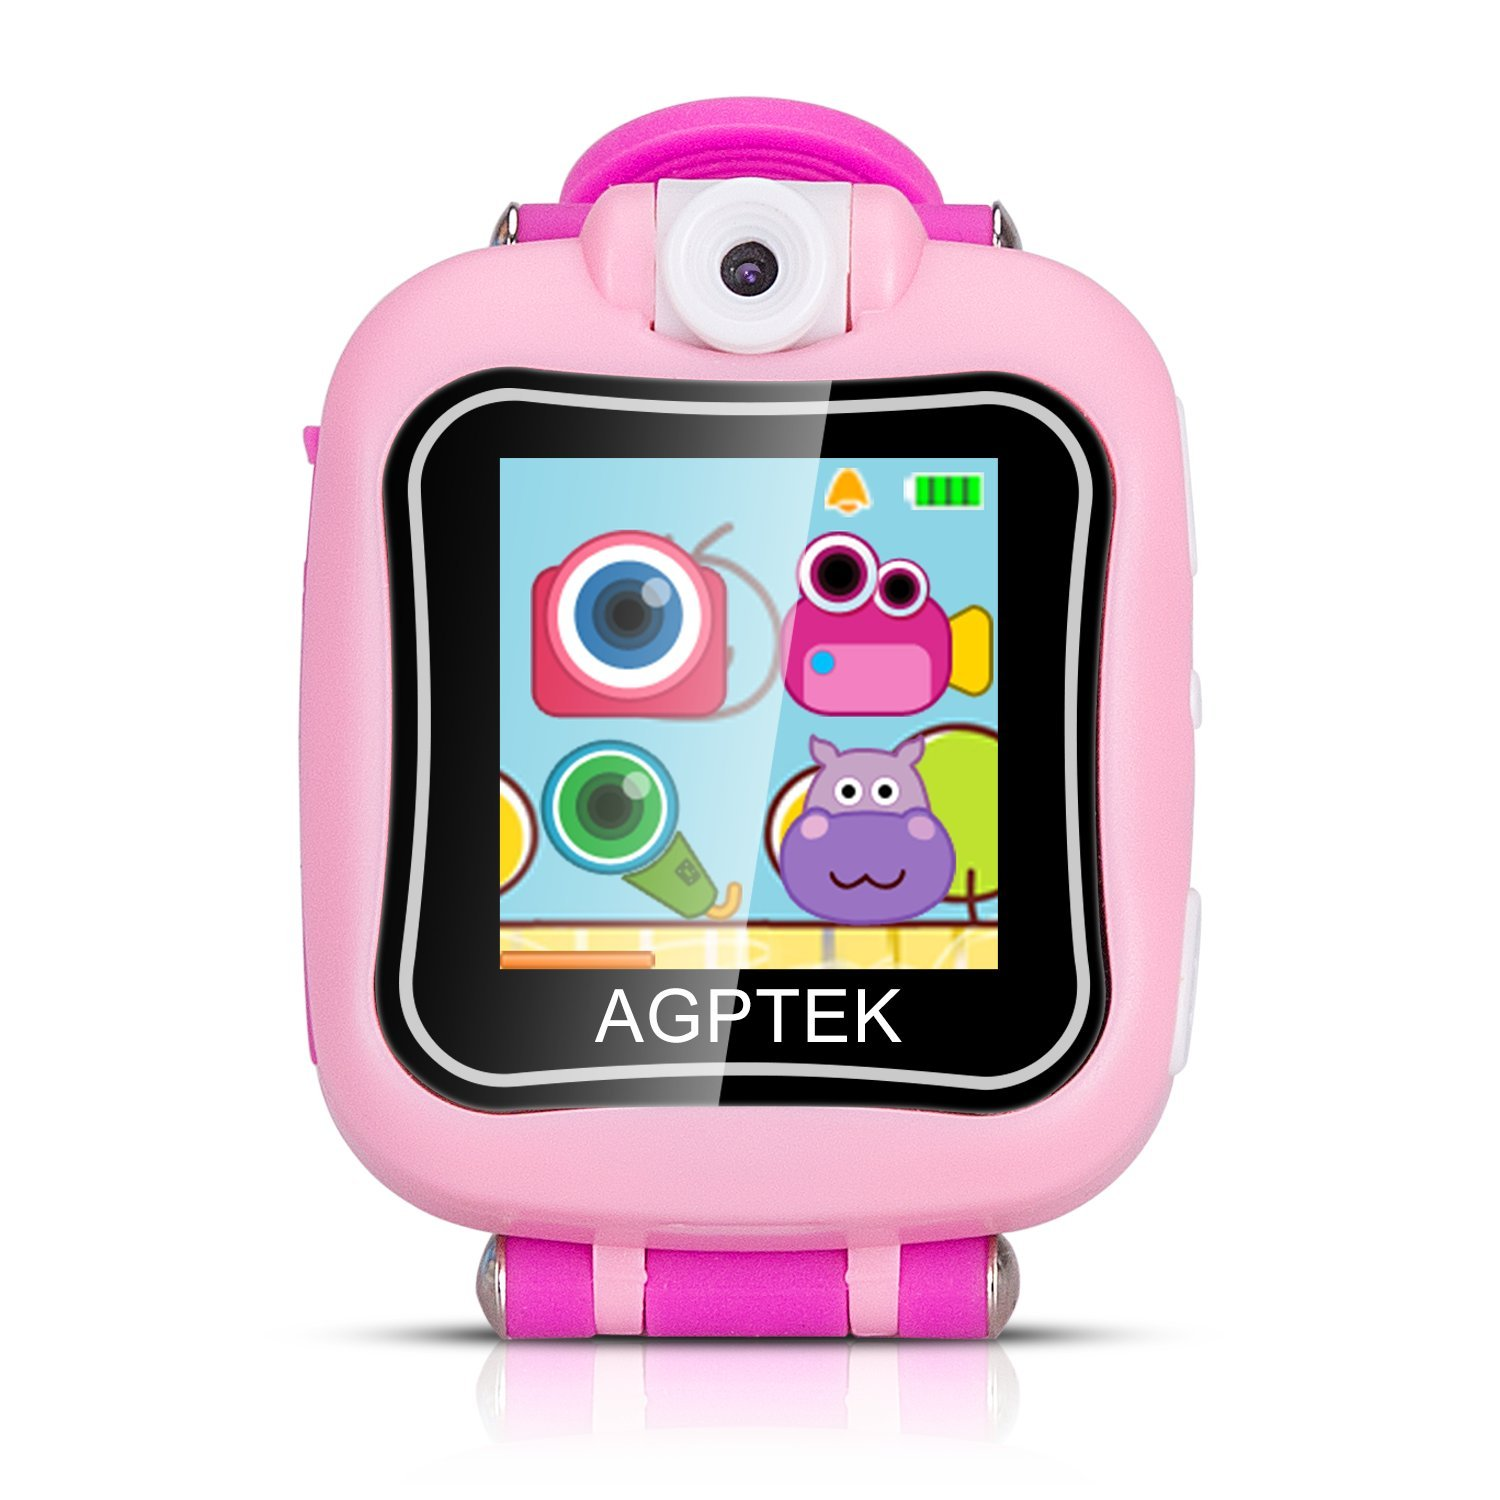 AGPTEK Kid Smartwatch for Girls, Smart Watch with HD Touch Screen, Rotating Camera, Games, Alarm Clock, Video, Recordings, Stopwatch, Pink